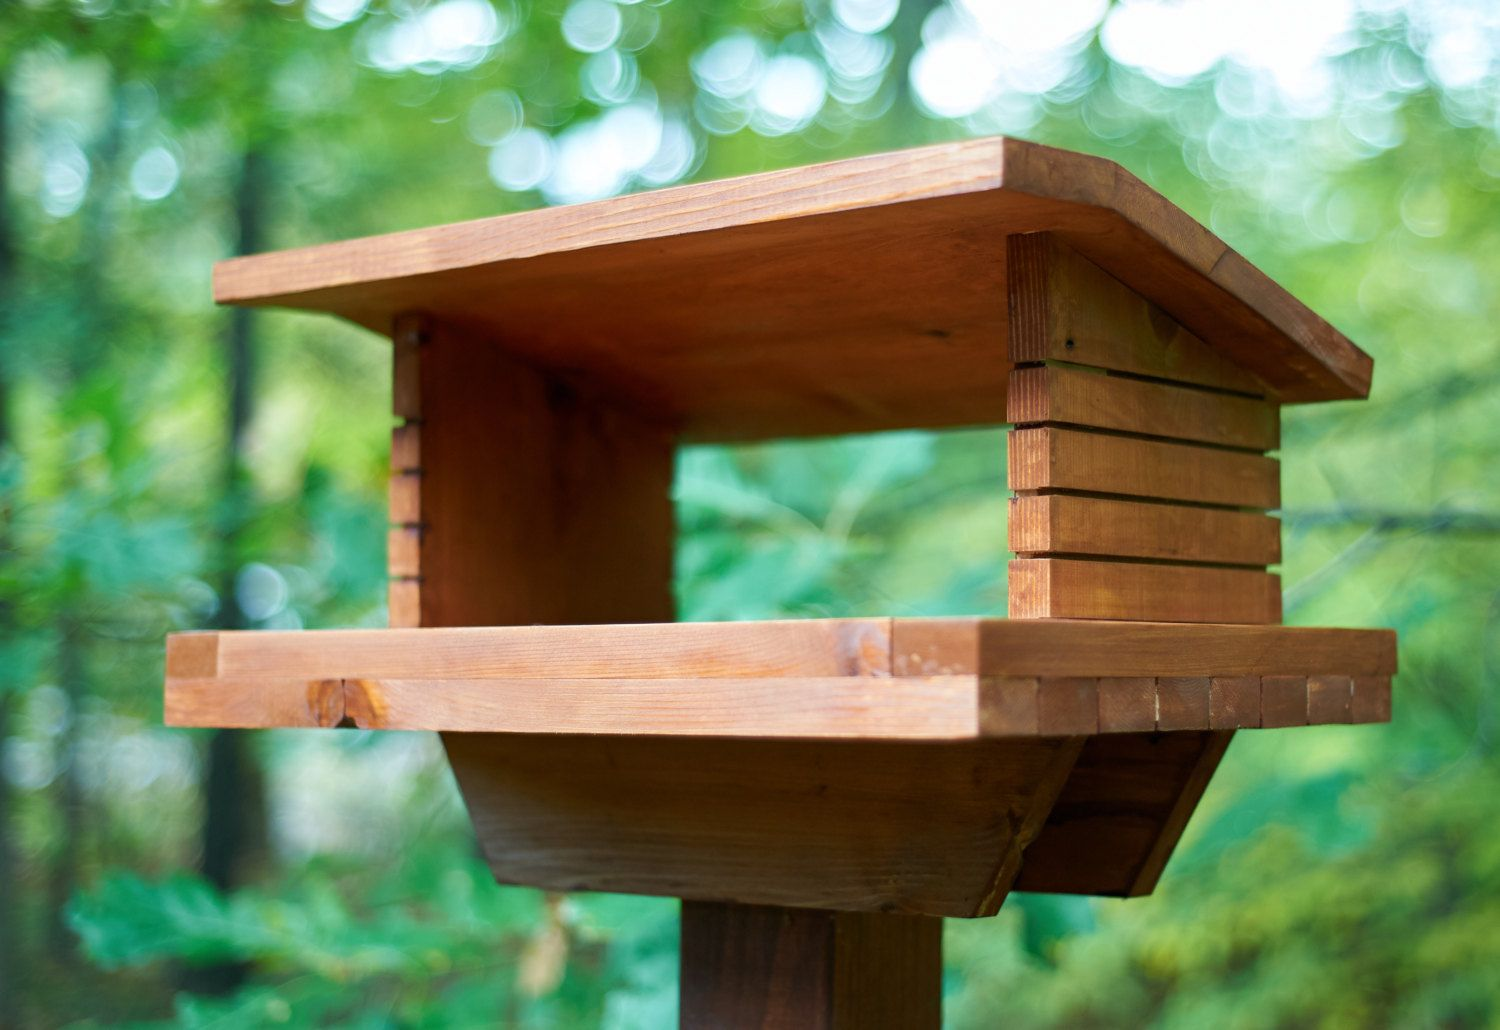 This Mid Century Modern Inspired Bird Feeder Is Made Of Solid Western Red Cedar And Is Sealed And Stained For Outdoor Weatherability It Also Easily M Passarinho